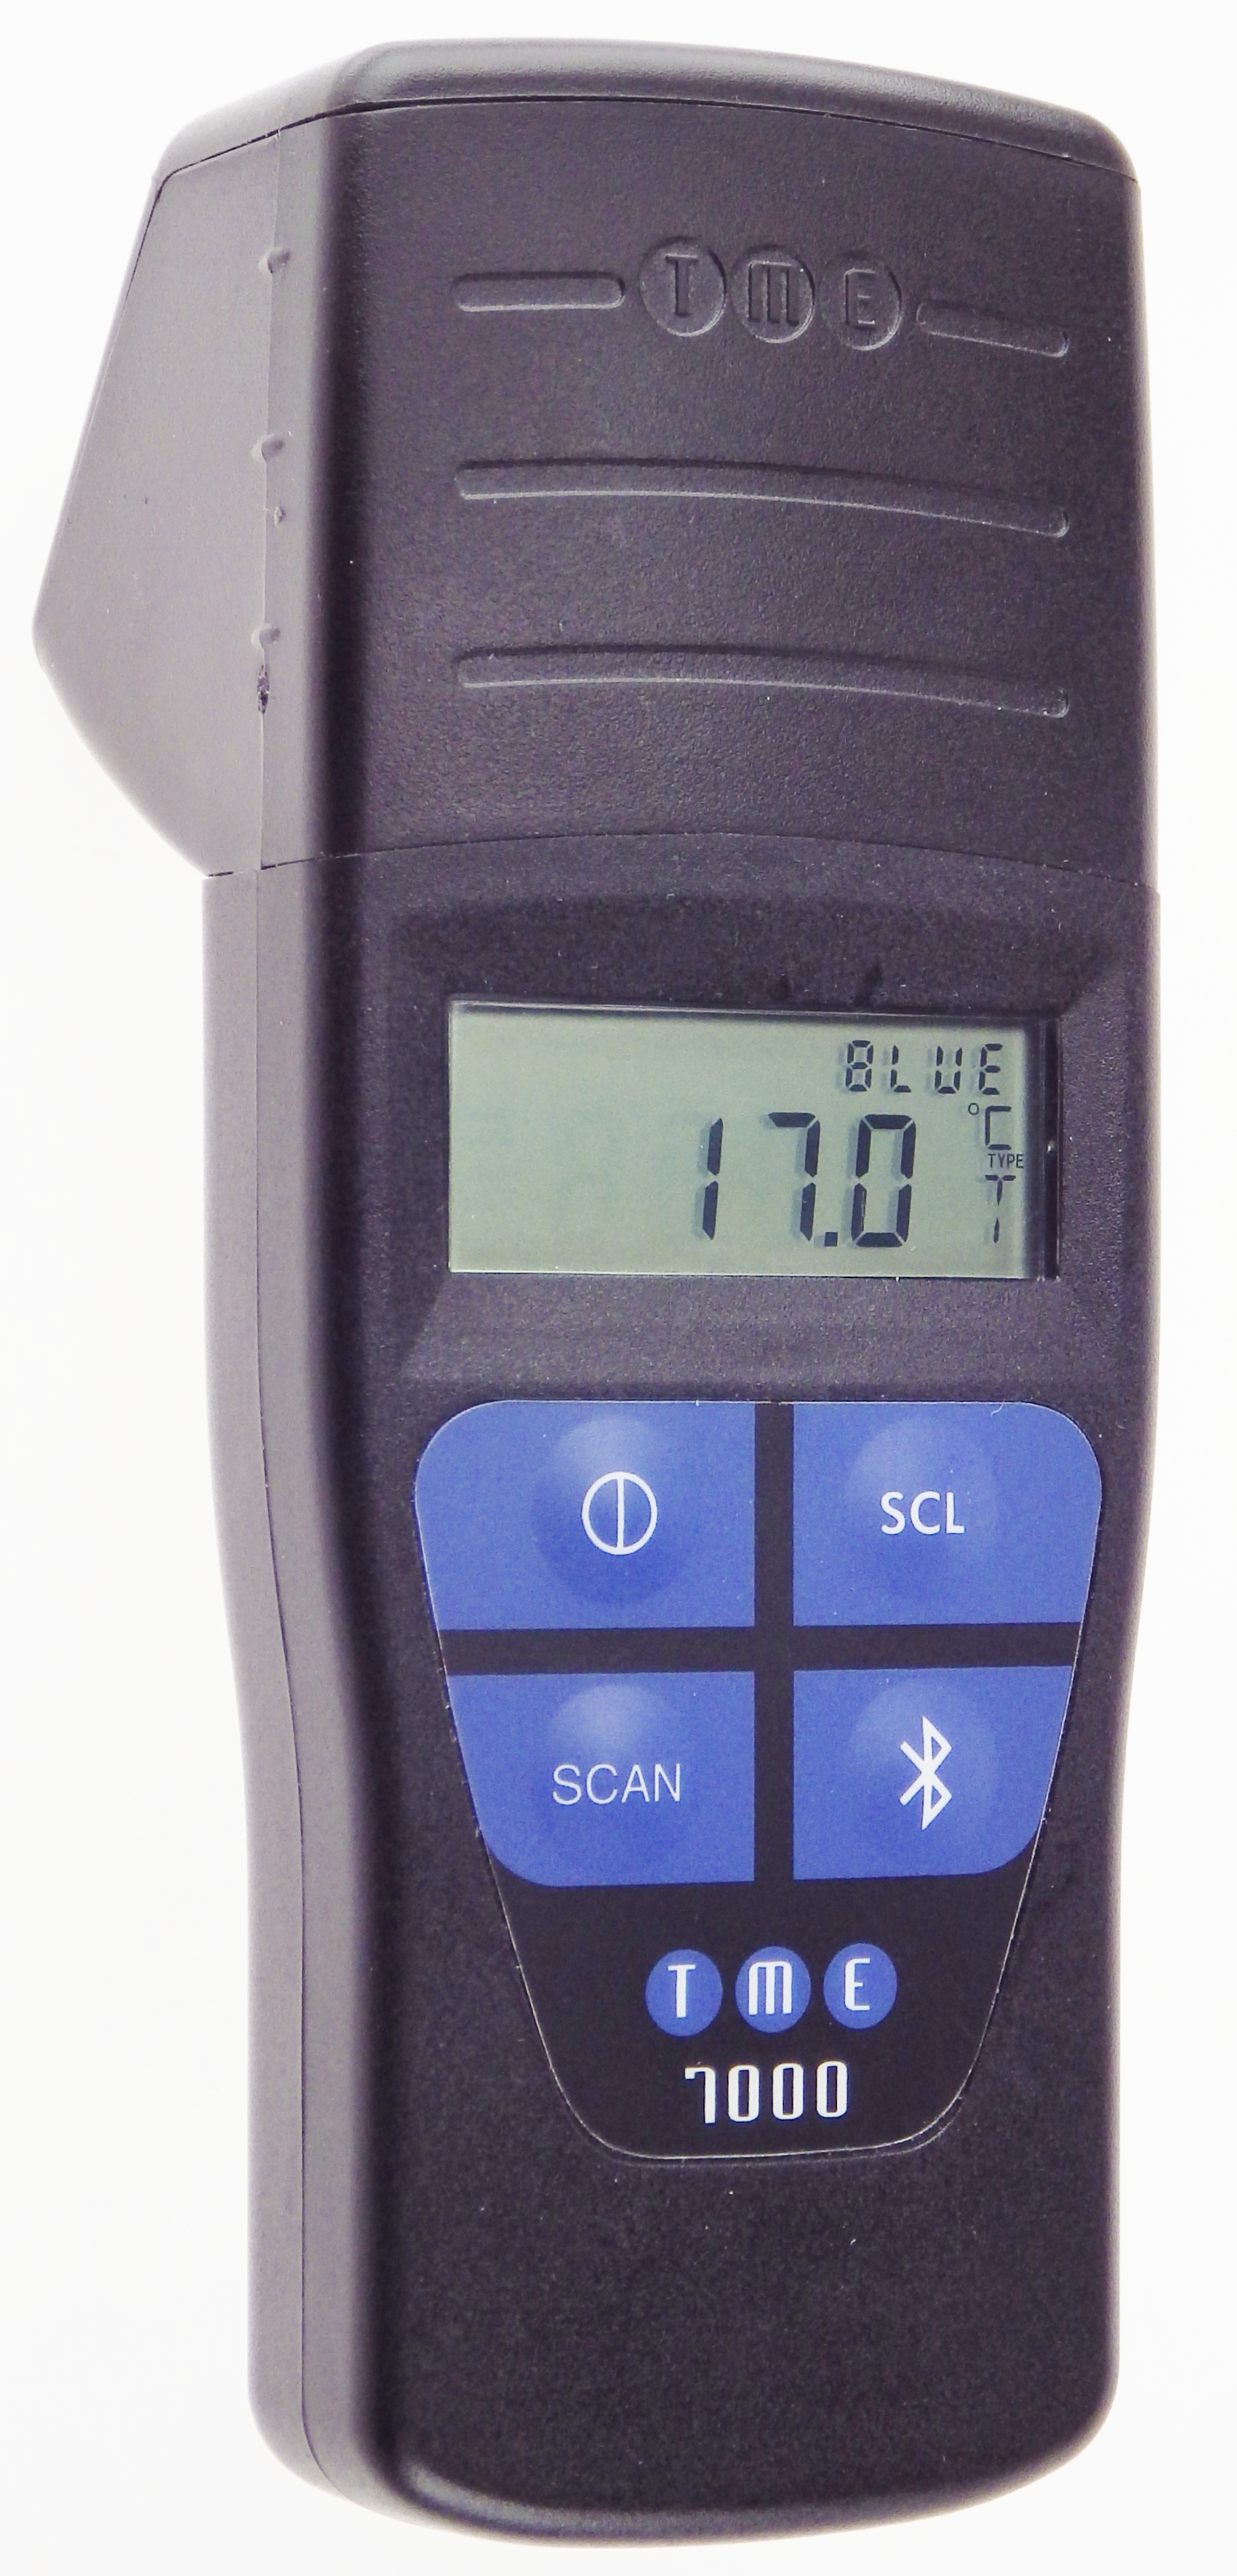 With a Barcode Scanner to record product information, and USB interface for easy downloading, this T...